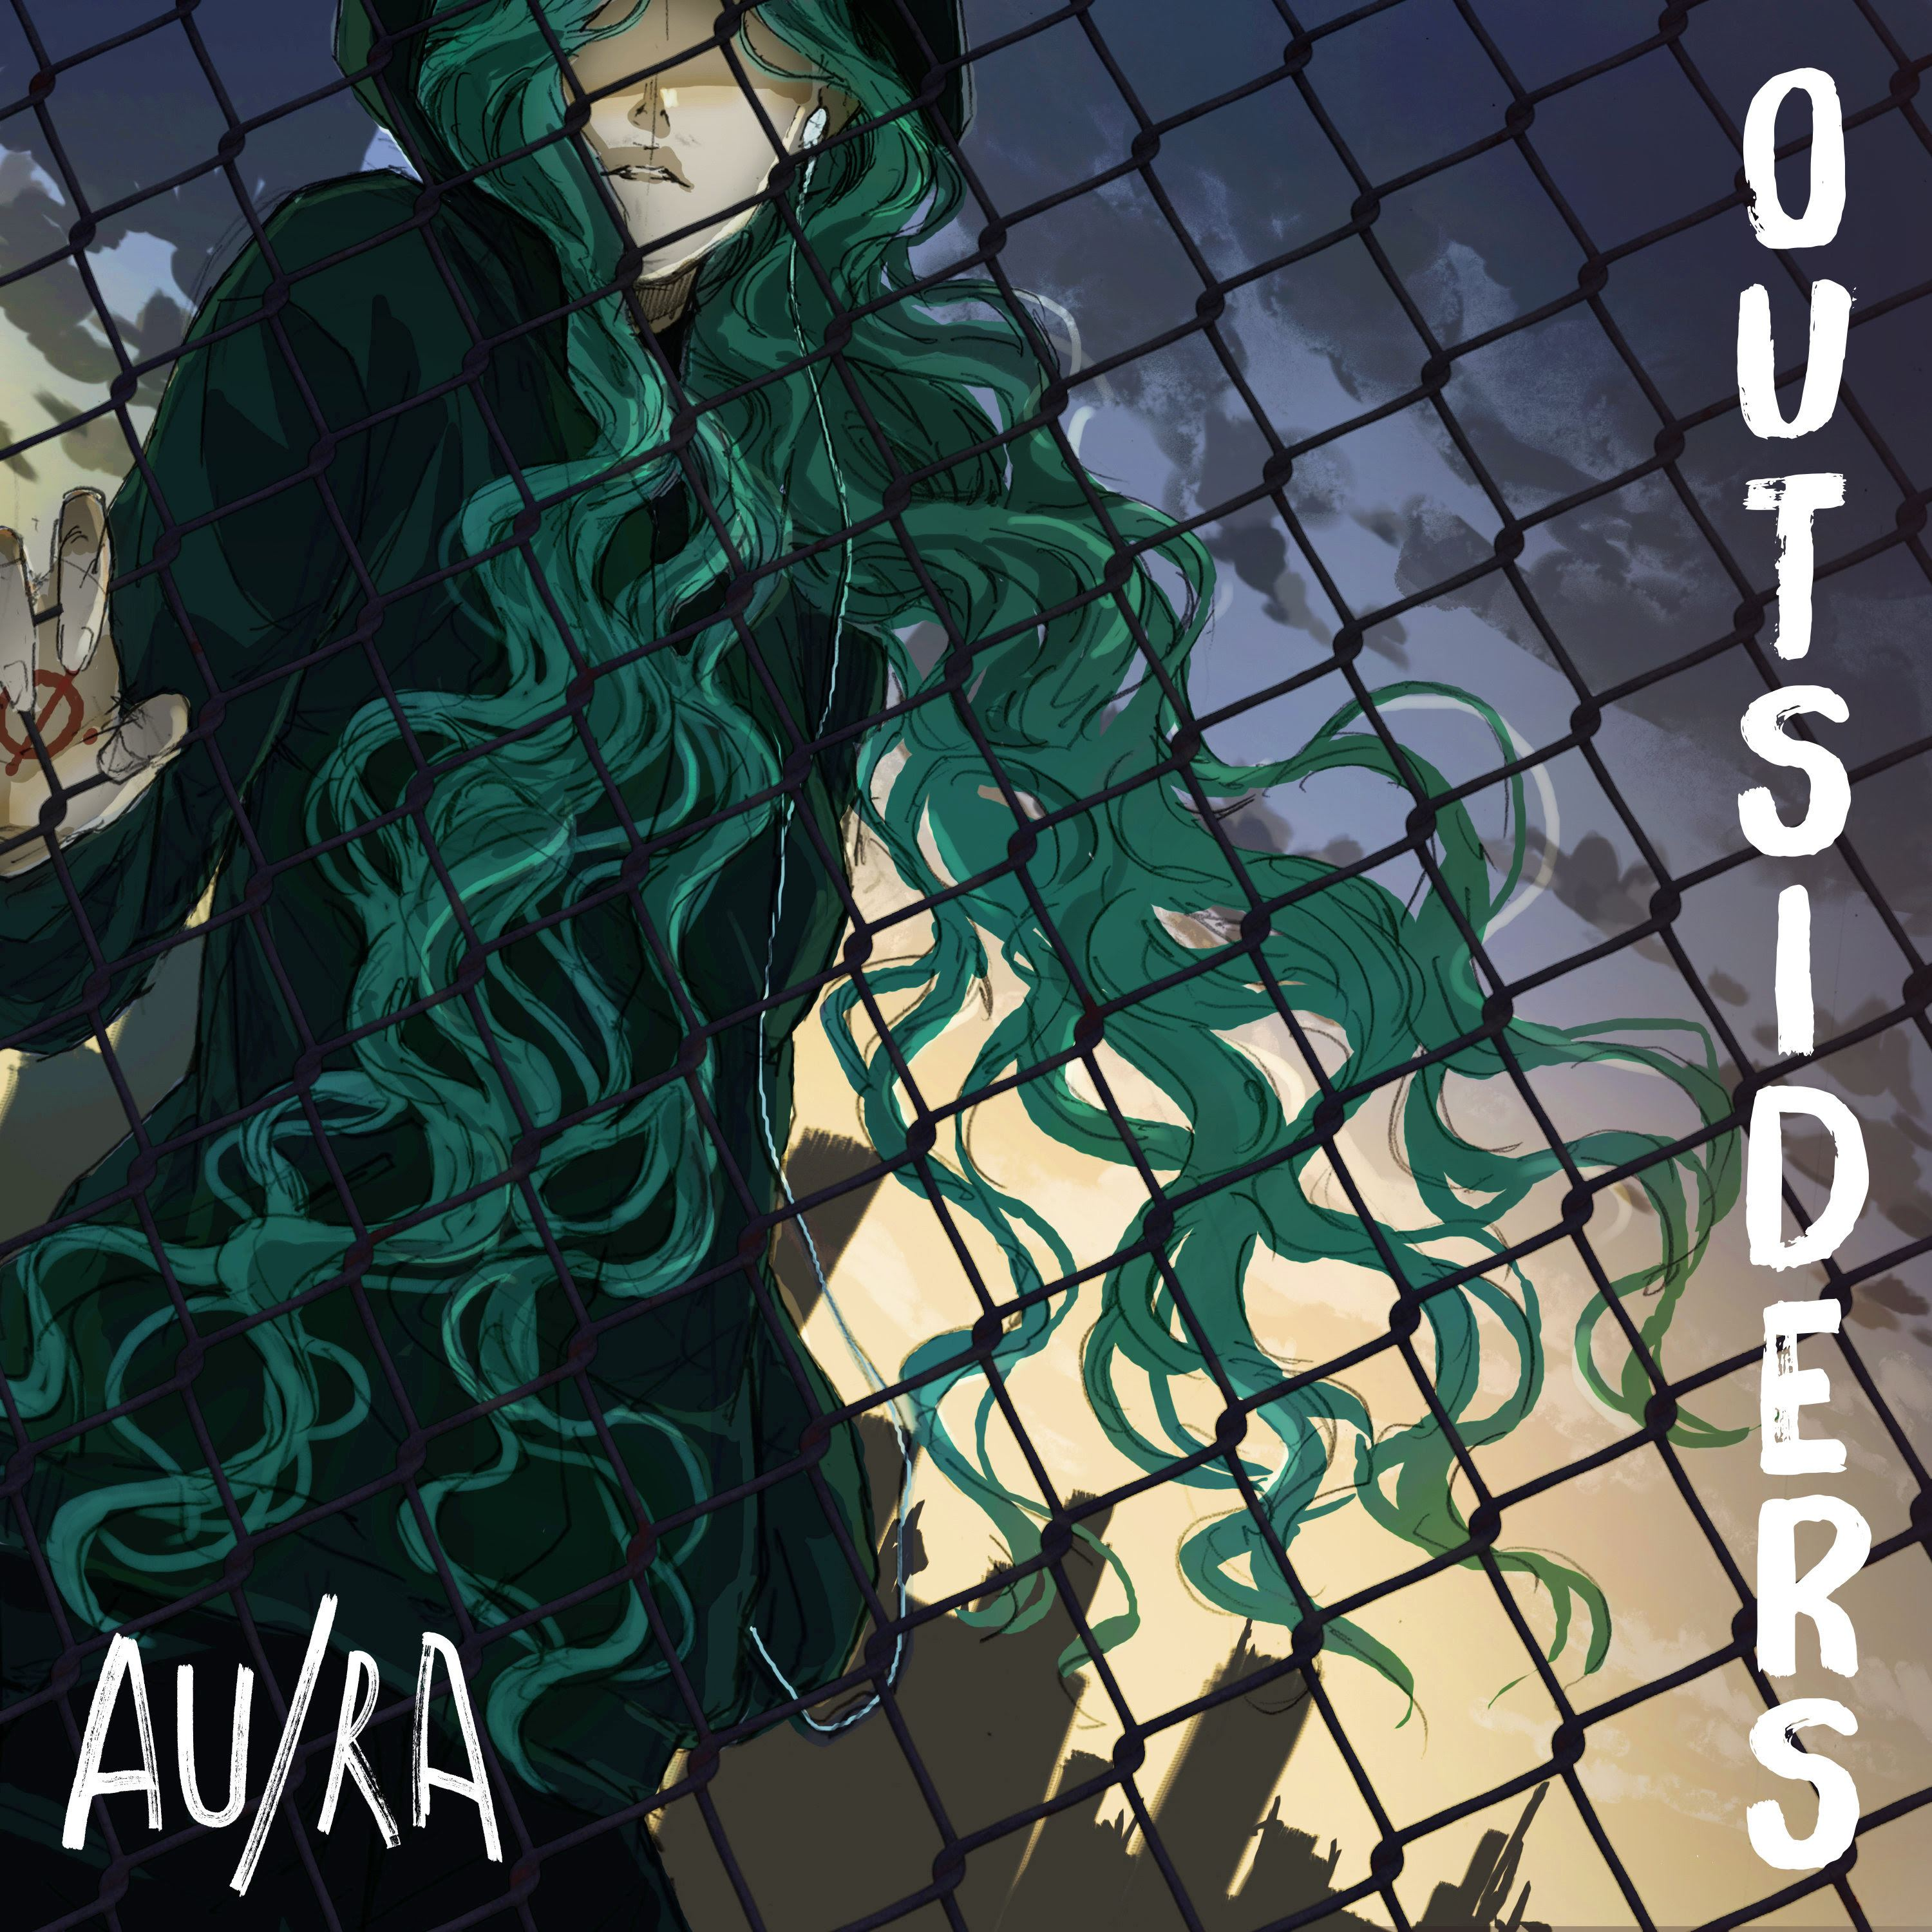 Au/Ra - Outsiders